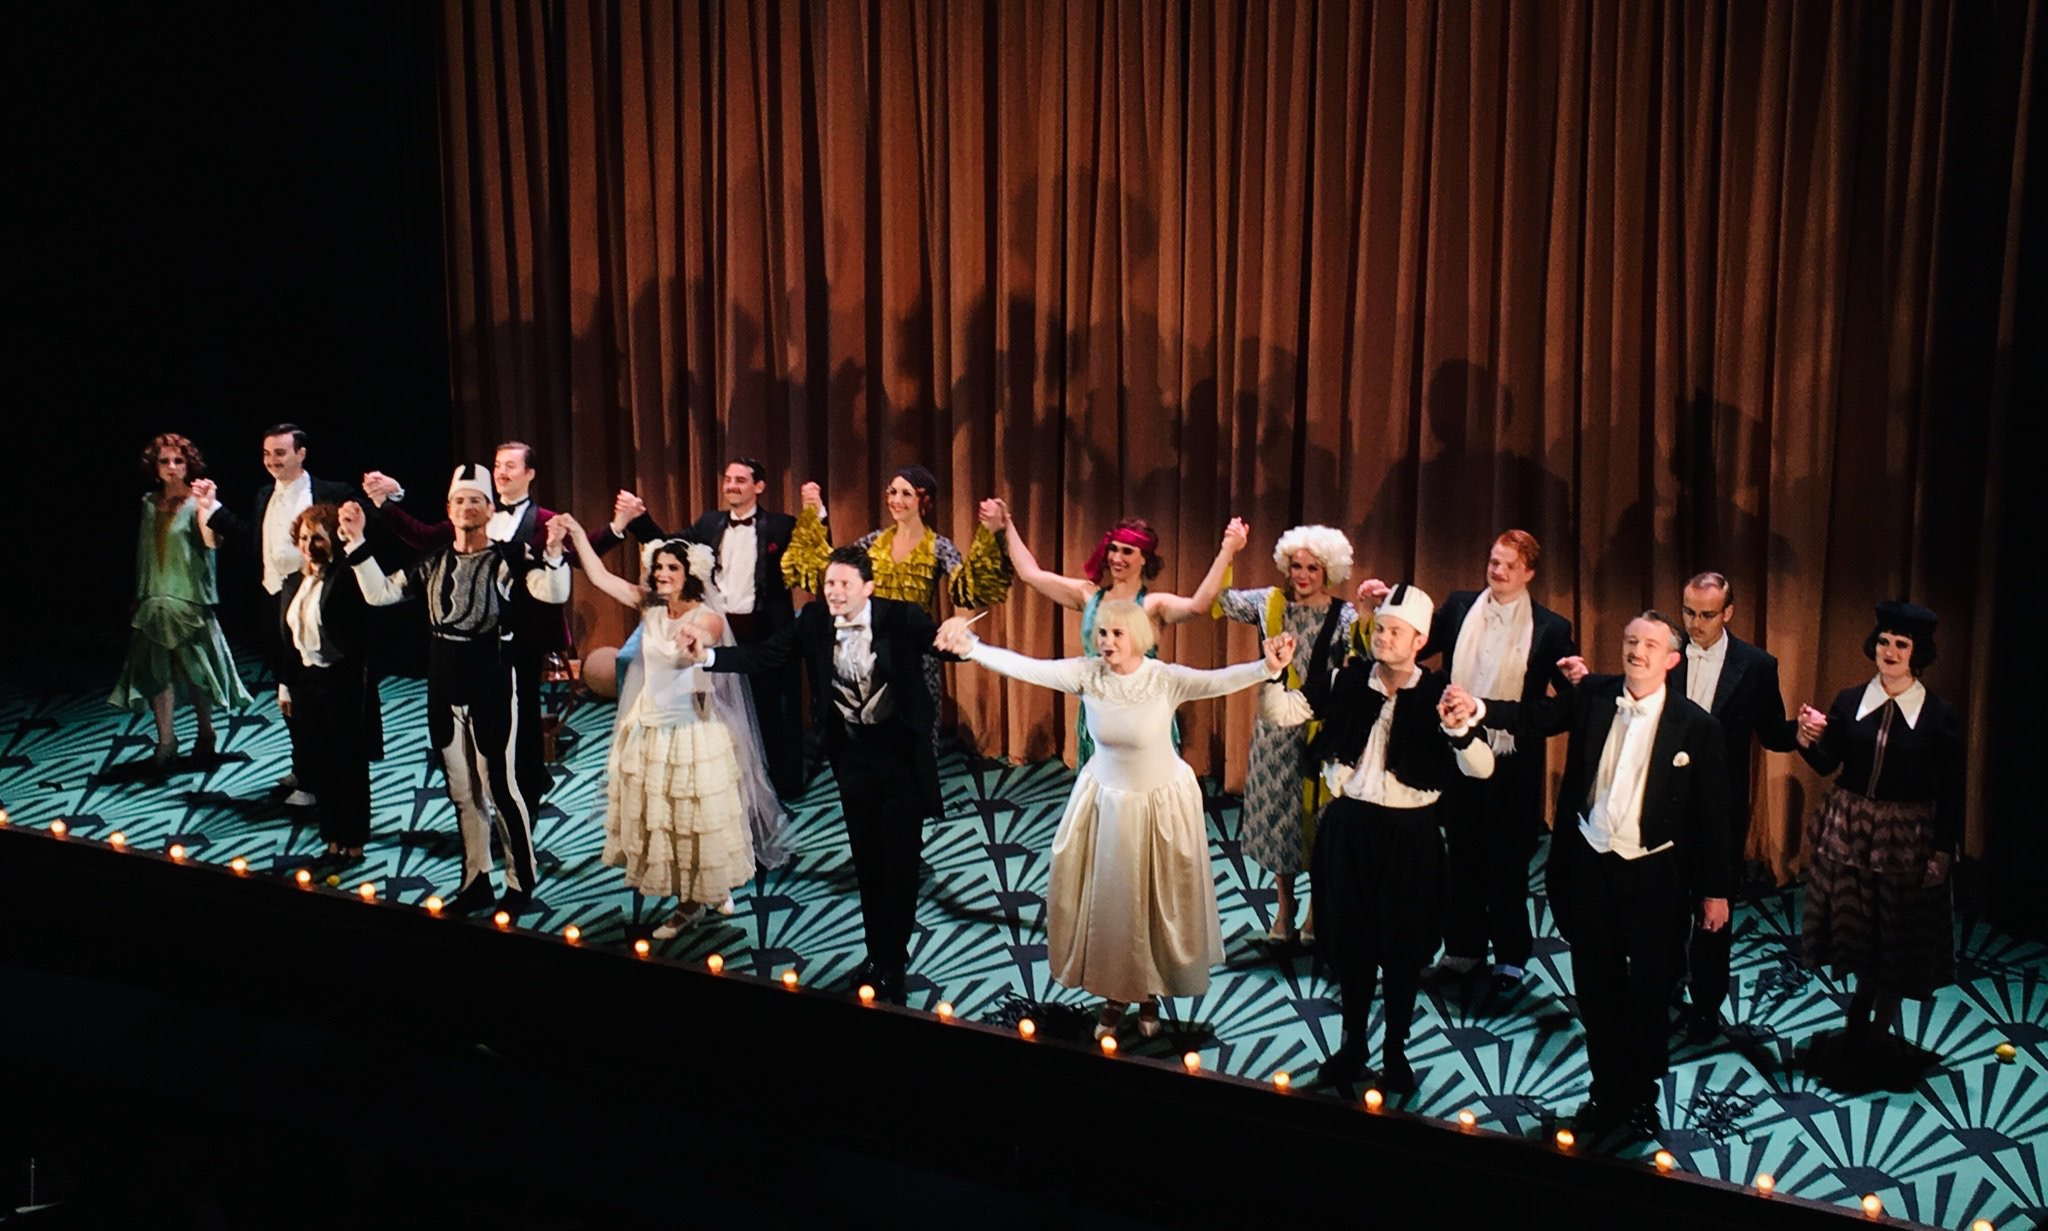 The first night curtain call of Così fan tutte at Nevill Holt Opera June 2019